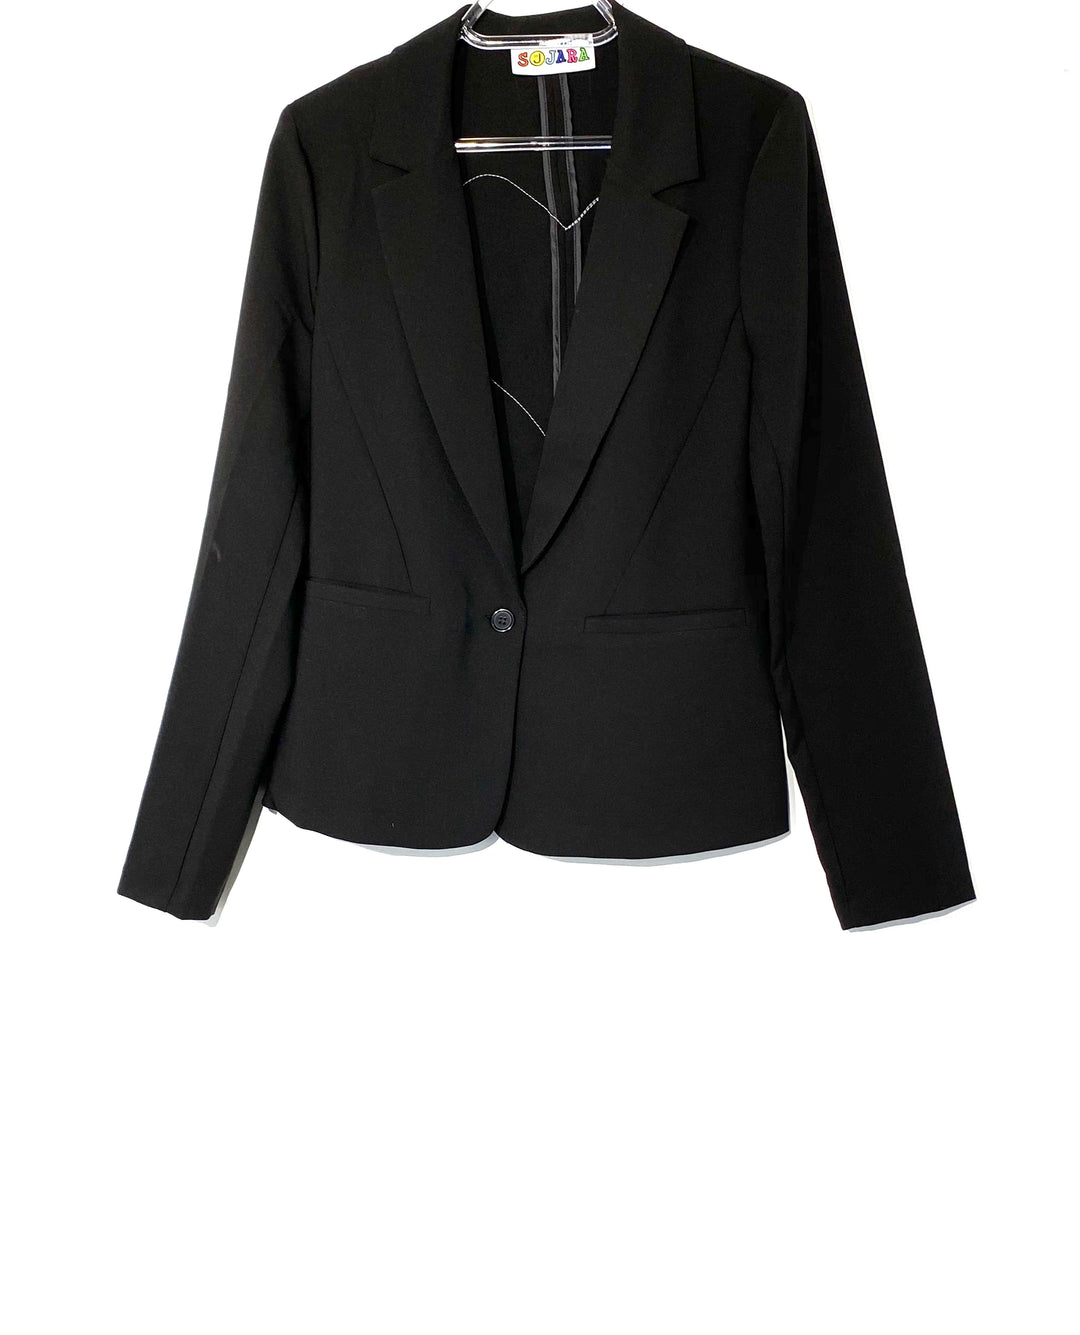 Primary Photo - BRAND:    SOJARA<BR>STYLE: BLAZER JACKET <BR>COLOR: BLACK <BR>SIZE: S <BR>OTHER INFO: SOJARA - <BR>SKU: 262-26275-69781<BR>SIZE TAG MISSING AS IS